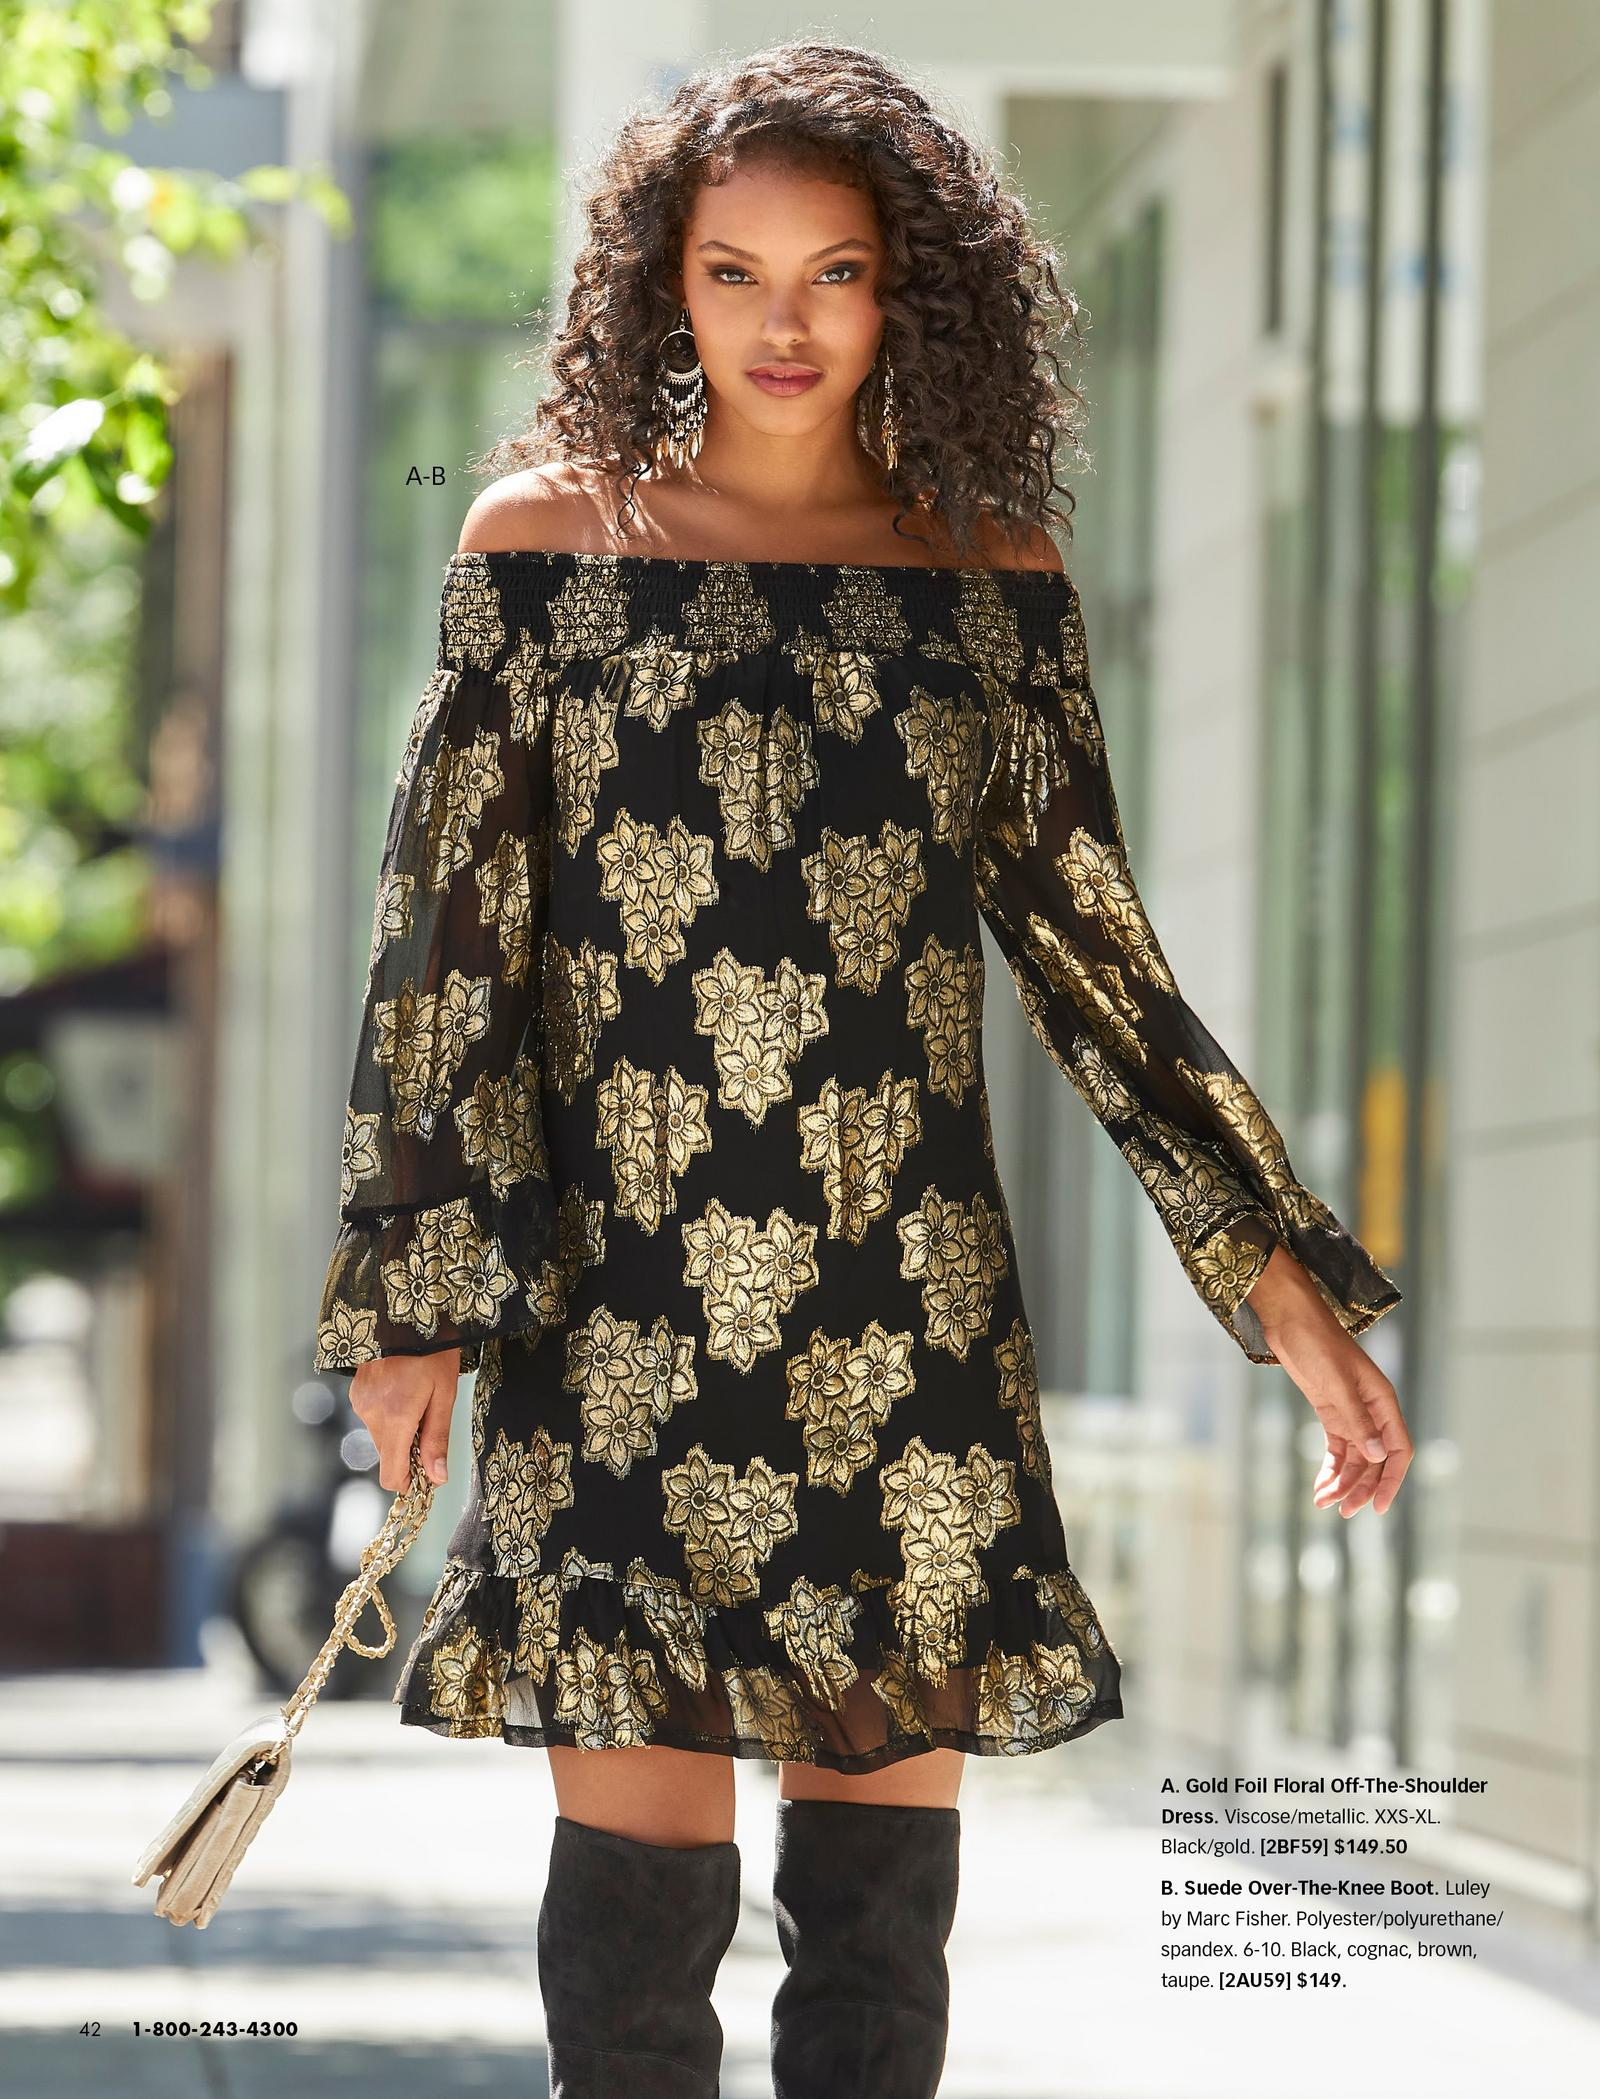 model wearing a black and gold foil floral print off-the-shoulder long sleeve dress and black over-the-knee suede boots.